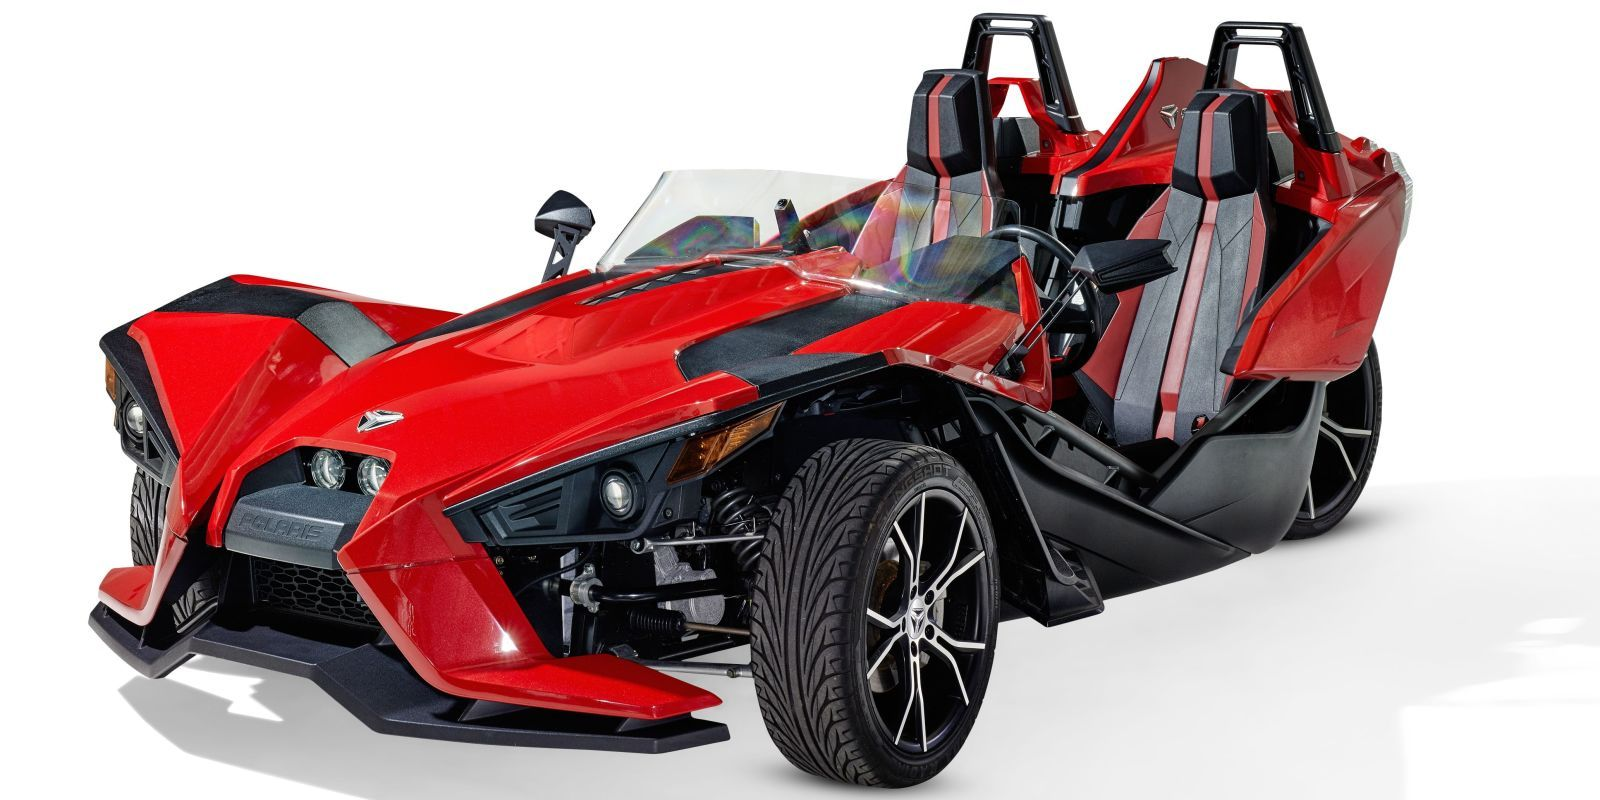 How It Works The Polaris Slingshot Three Wheeled Supercar New Classes Of Vehicle Don T Come Along All That Often Which Is Why With Images Polaris Slingshot Slingshot Car